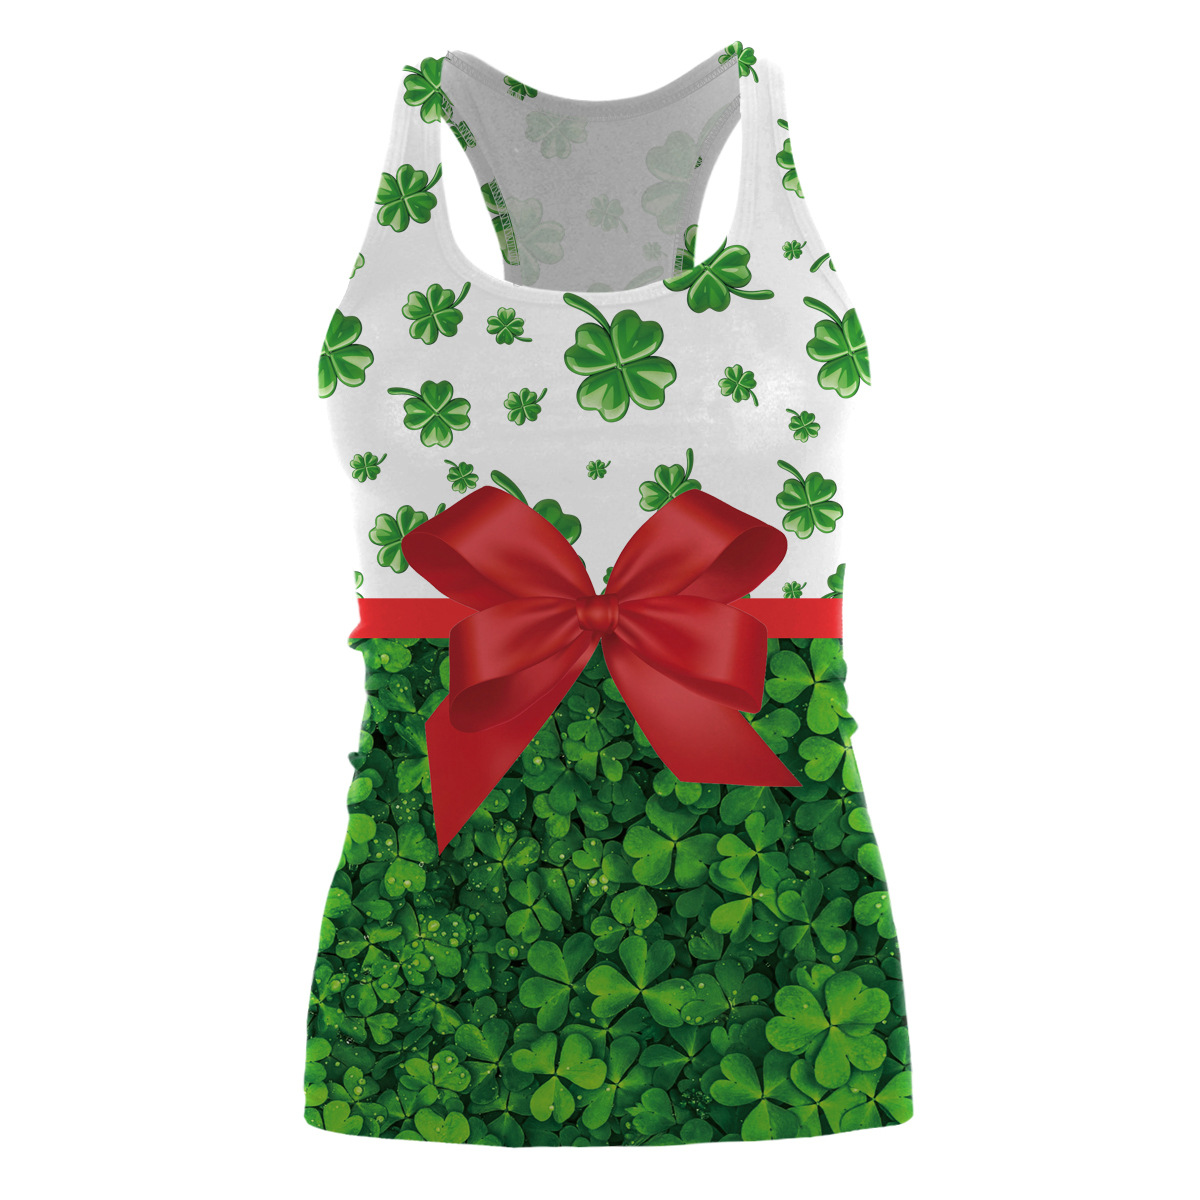 45043194085 2018 New Womens Green Leaves Clover Vest 3D Digital Printed St. Patrick s  Day Tops Tanks Free Size